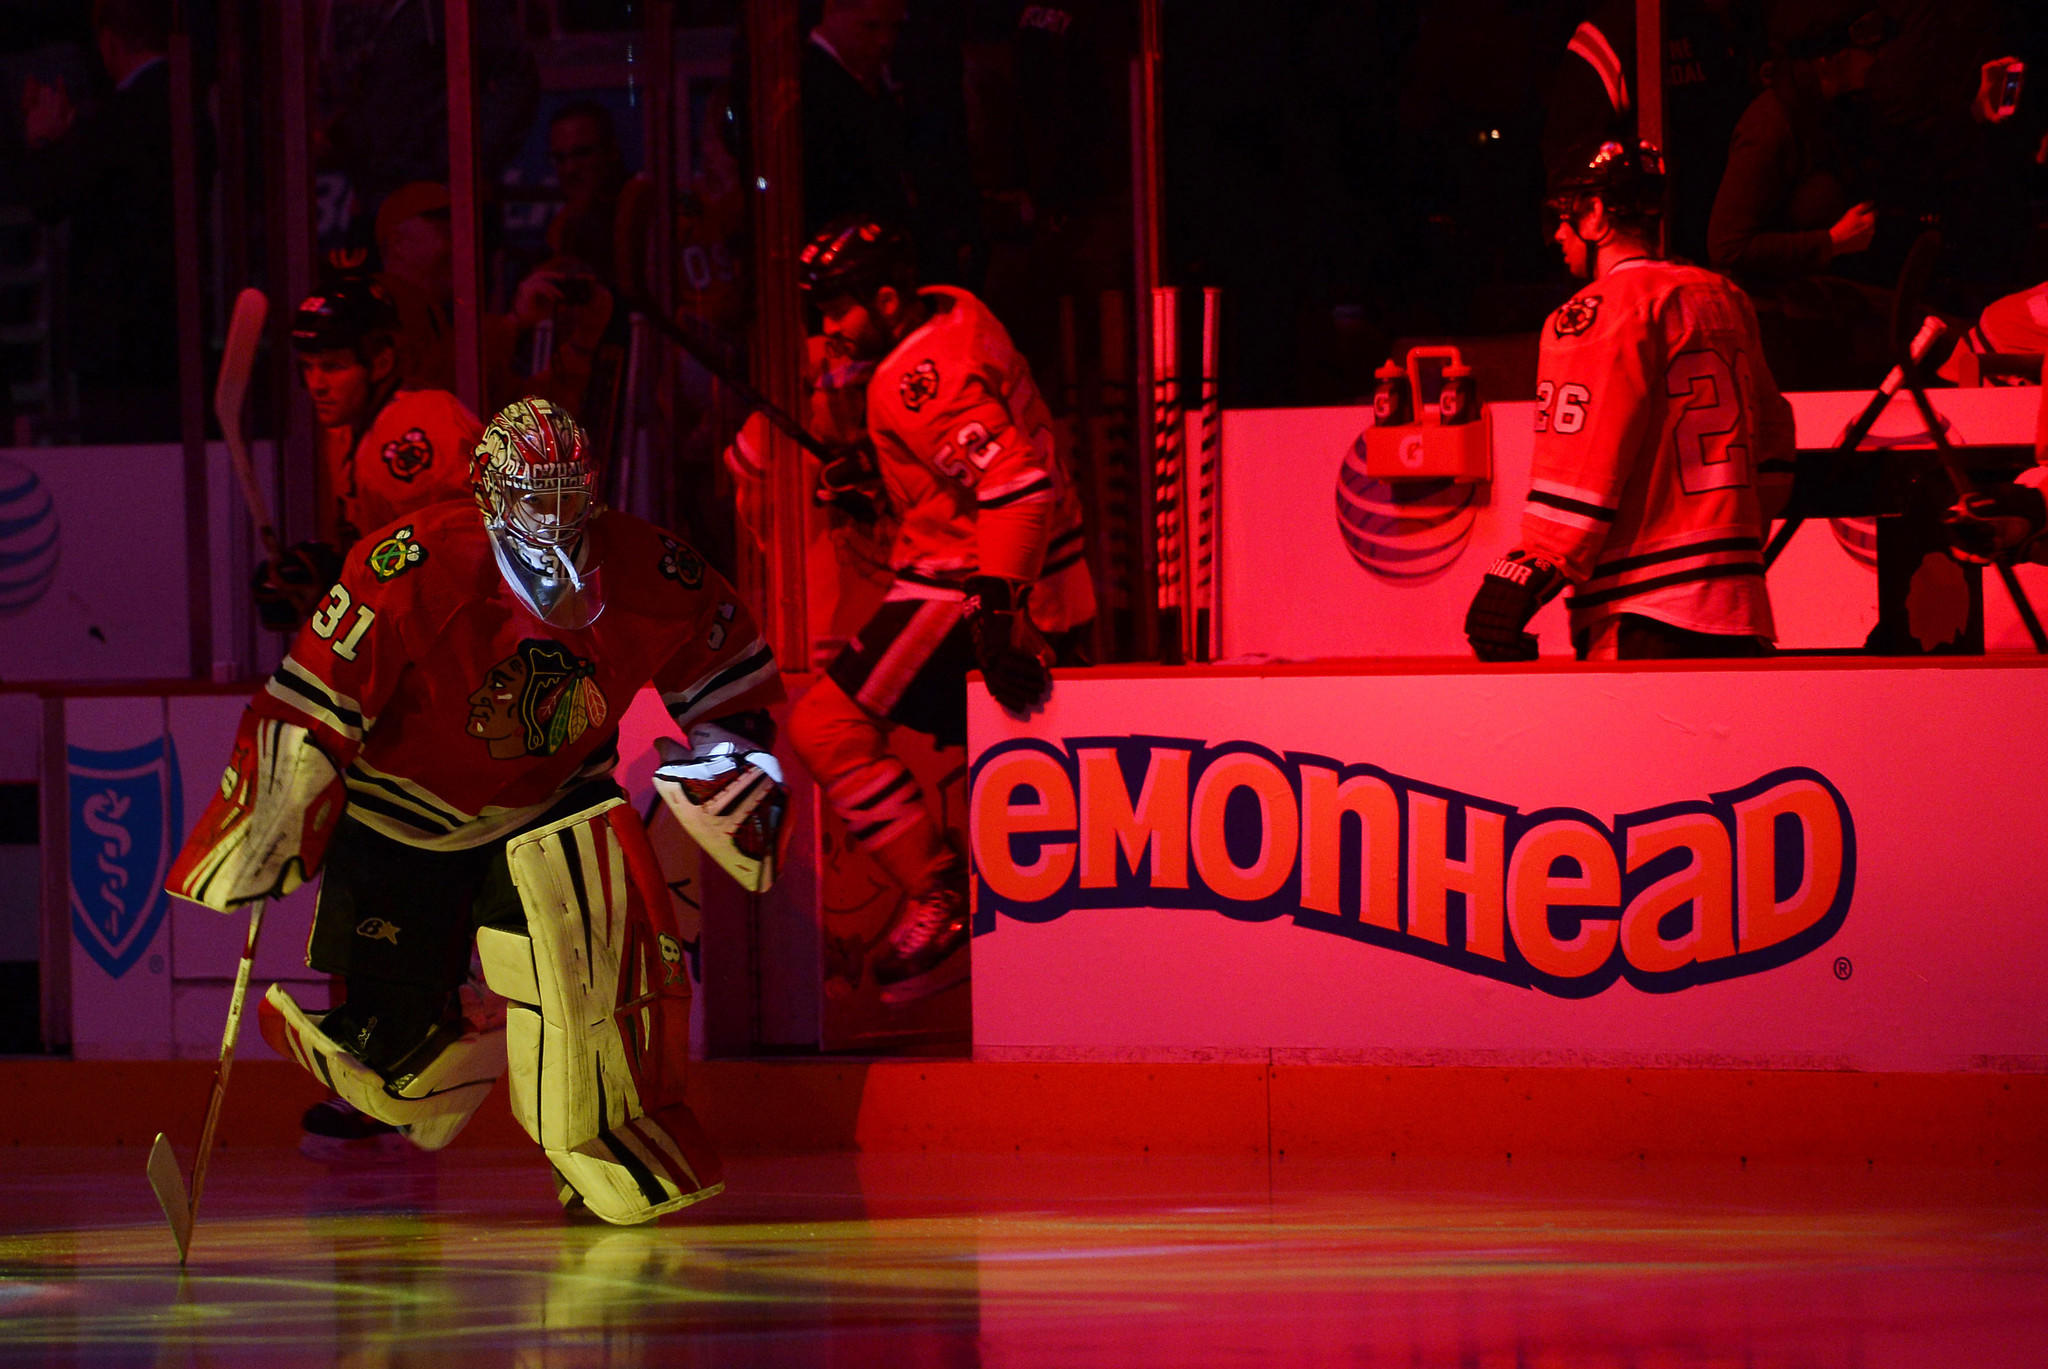 Blackhawks goalie Antti Raanta takes the ice against the Devils at the United Center.